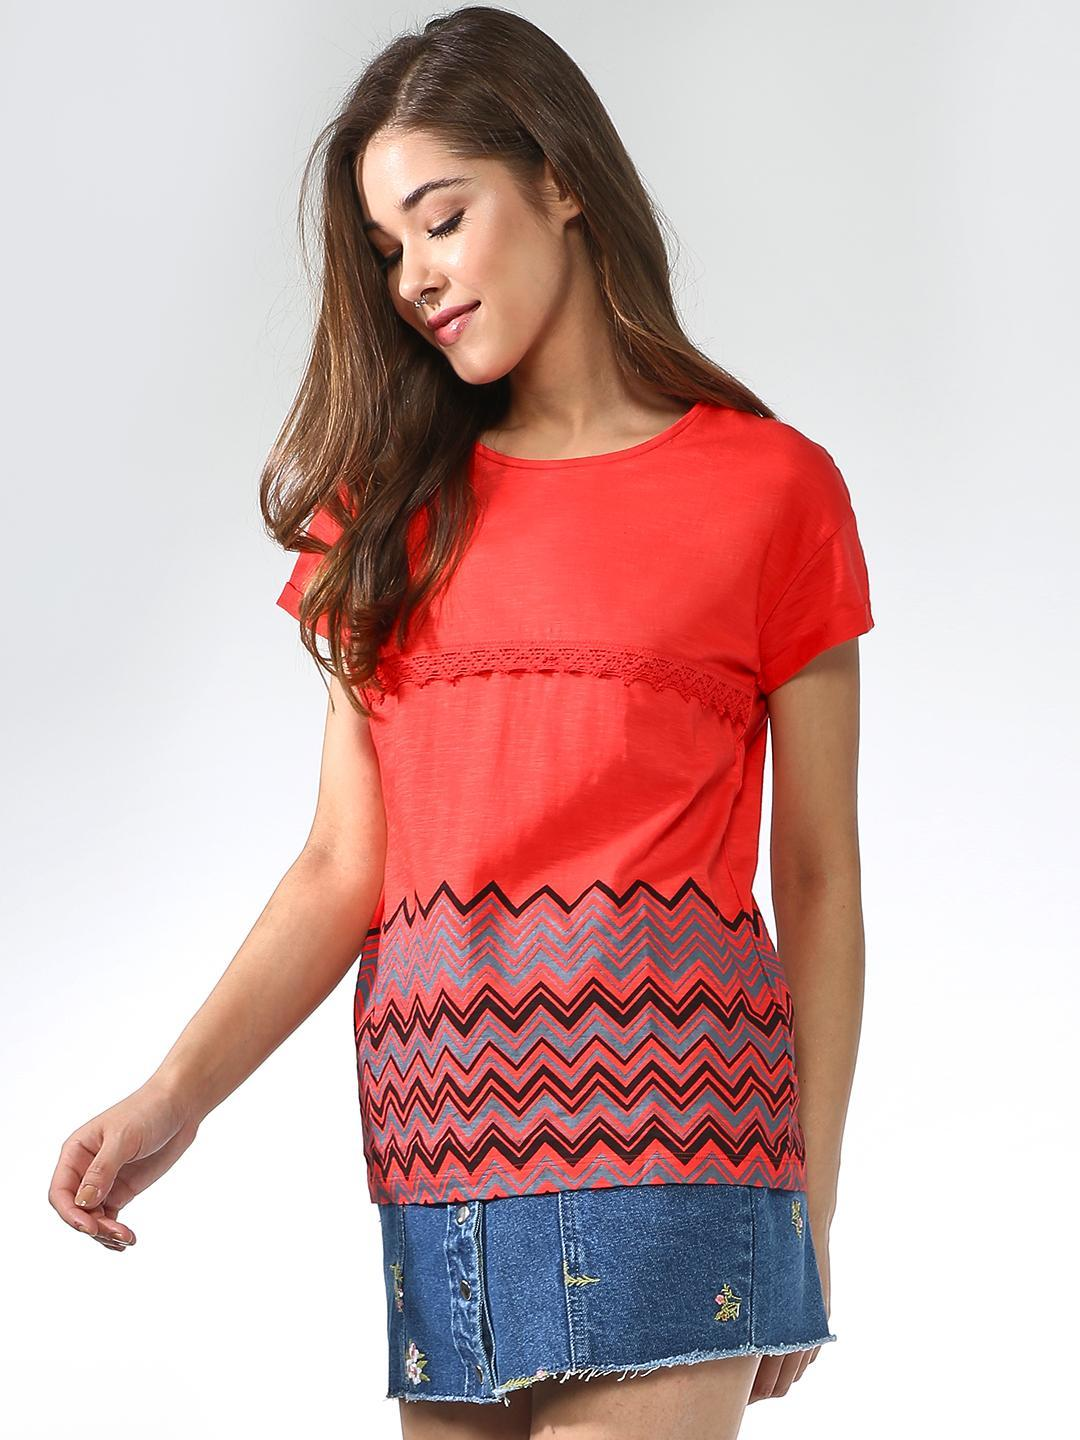 Blue Saint Red Chevron Print Short Sleeve Top 1